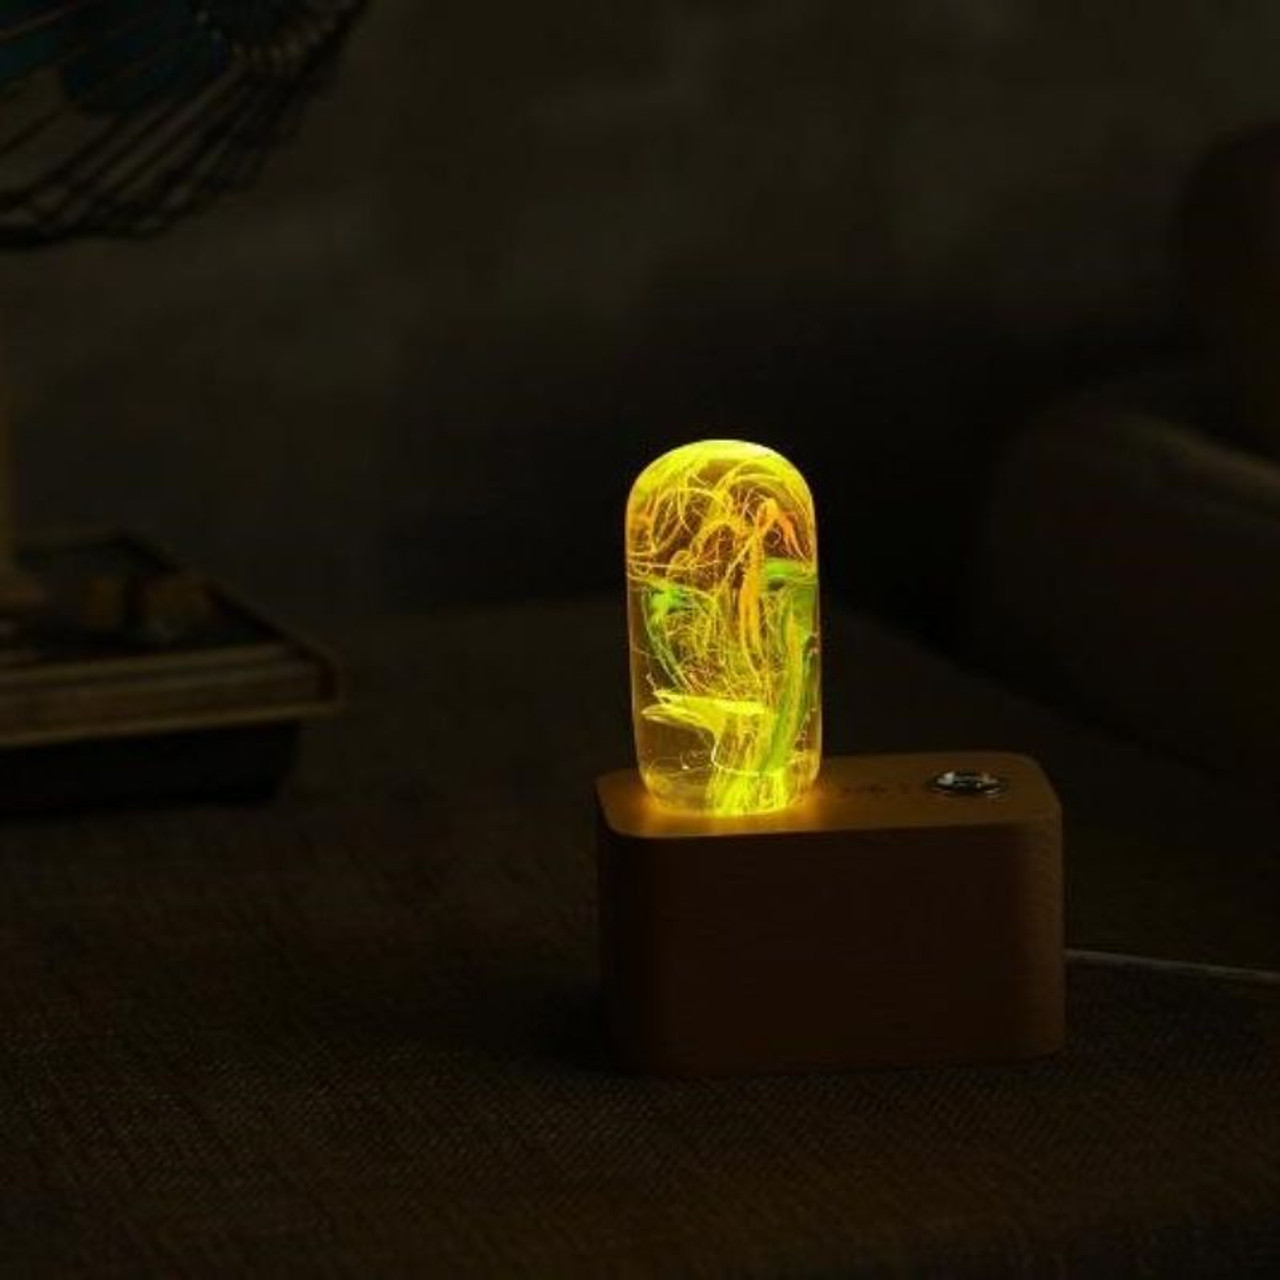 EP Light Time Orange and Green Bulb Art Fixture Lamp with Optional Modern or Vintage Base Stand